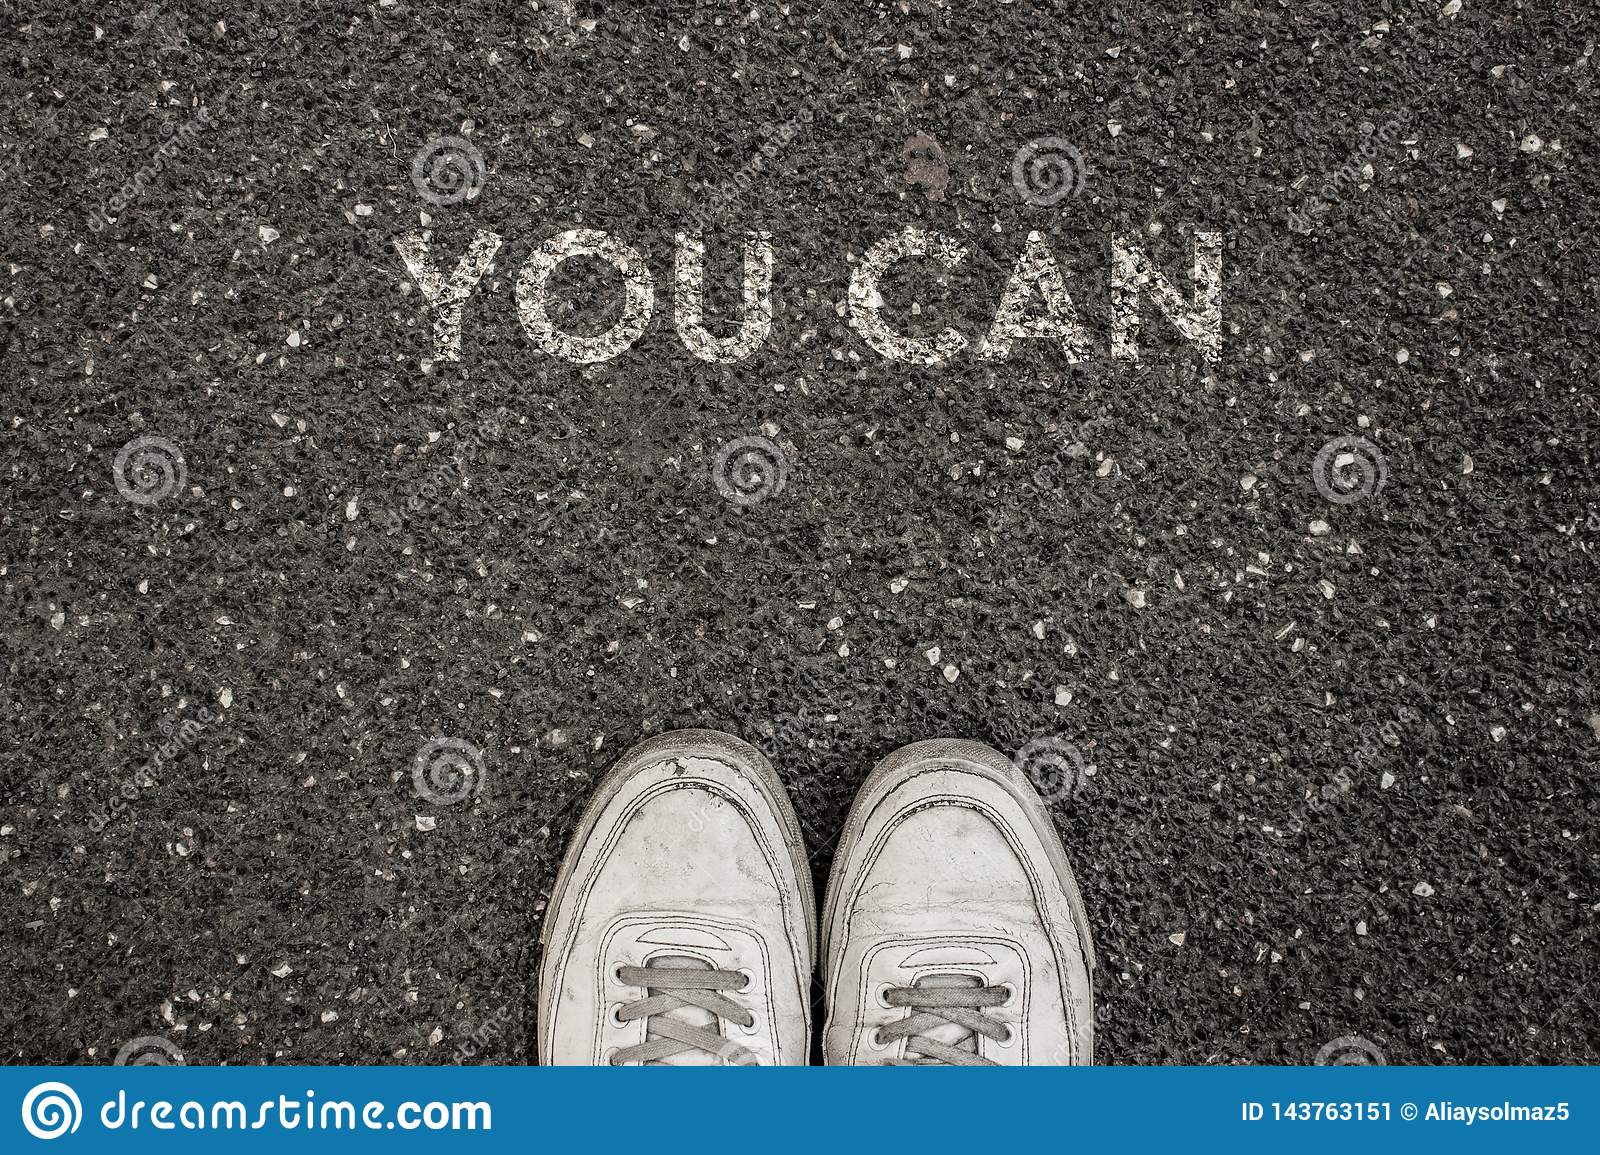 New Life Concept, Motivational Slogan with Word YOU CAN on the ground of asphalt